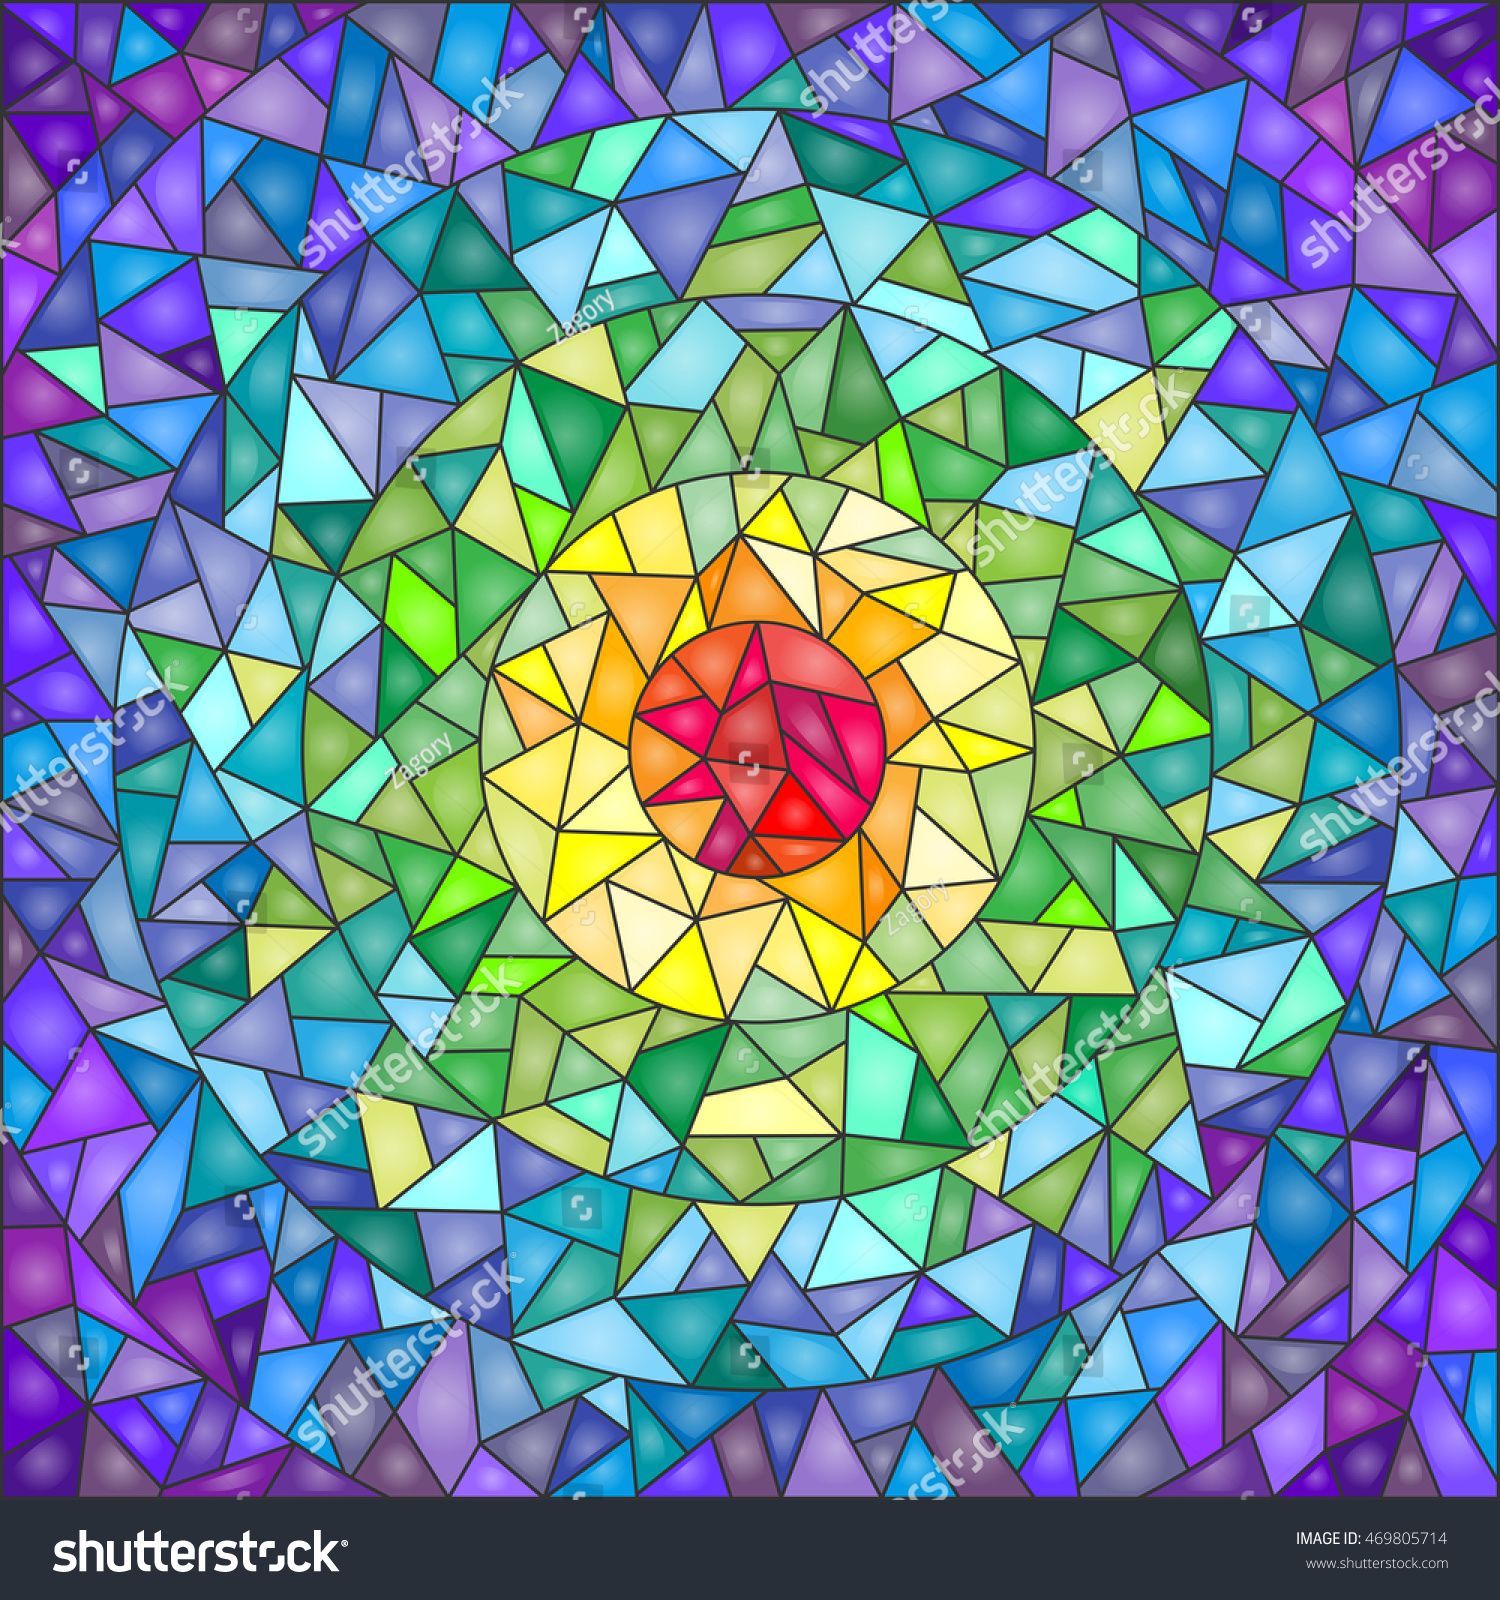 stock-vector-abstract-stained-glass-background-the-colored-elements-arranged-in-rainbow-spectrum-469805714.jpg